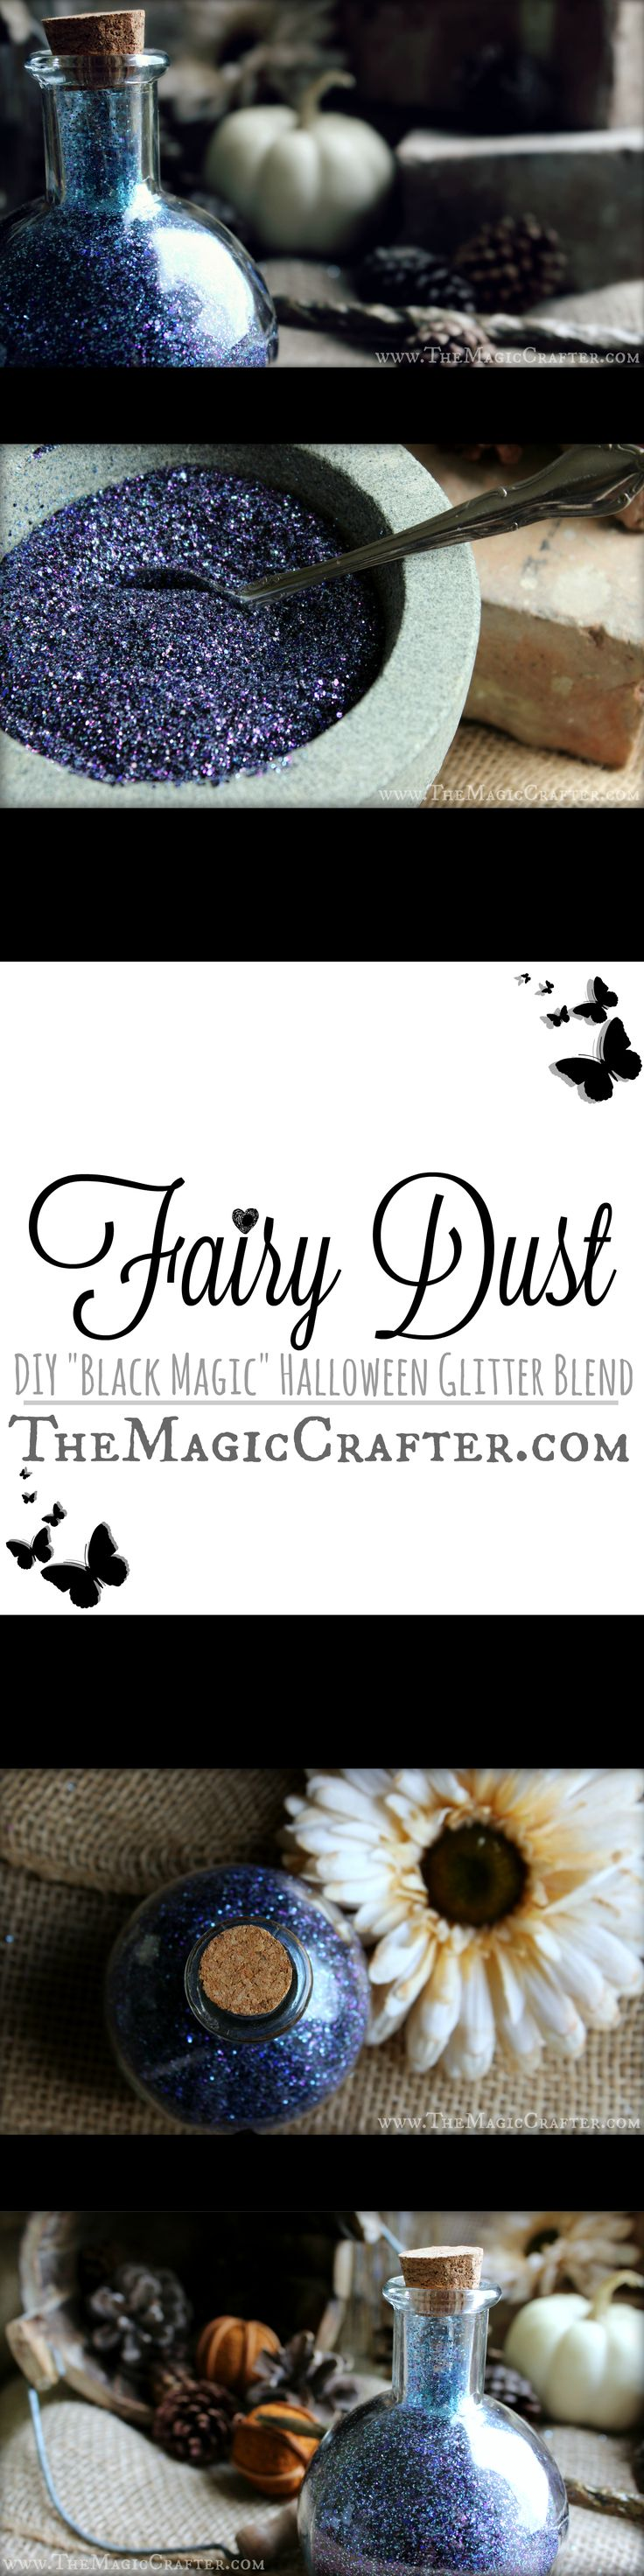 """Magic Potions ♥ DIY ♥ How to Make Fairy Dust ♥ Halloween Crafts Tutorial ♥ """"Black Magic"""" Spooky Glitter Blend for costume & home party props #DIYHalloween #Fairydust #PixieDust"""